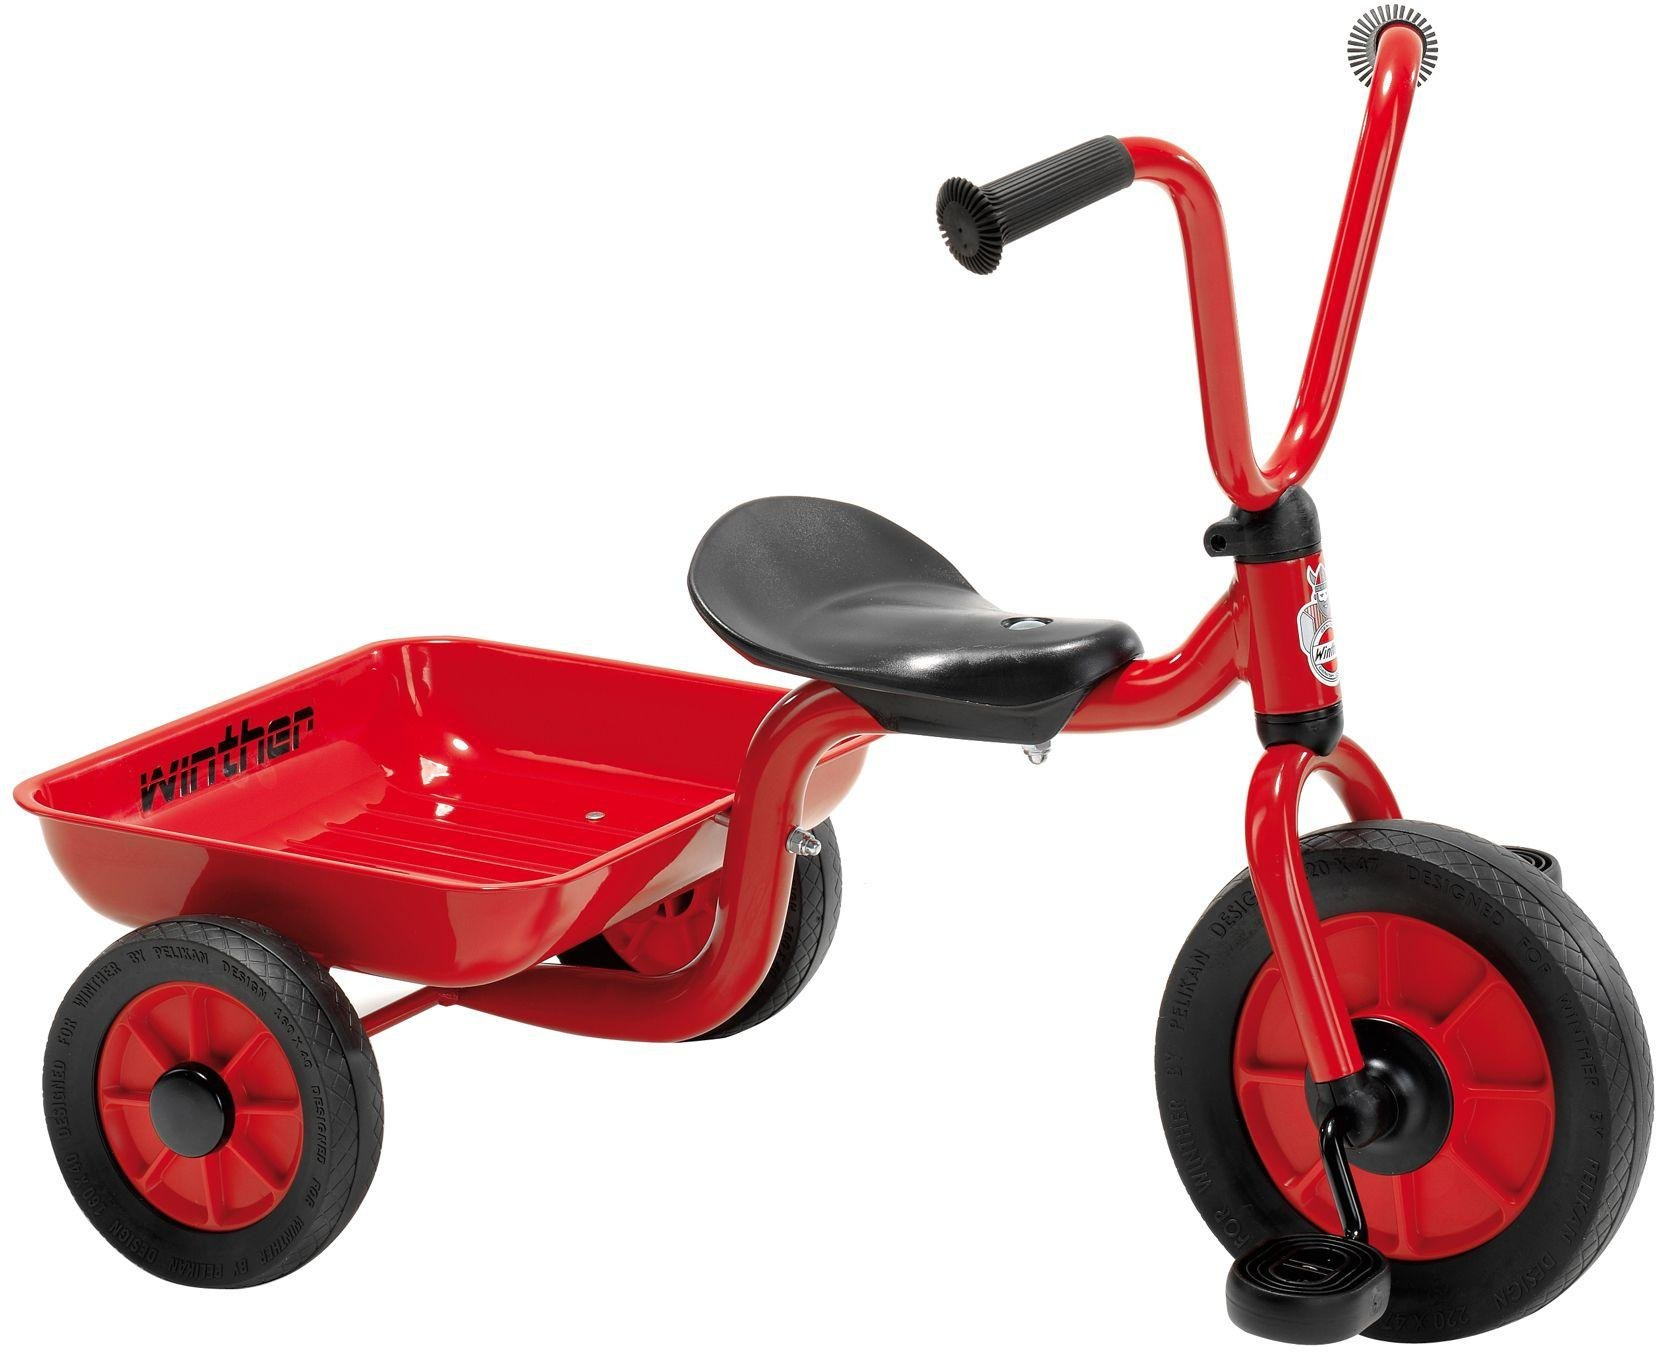 Winther Mini Viking Tricycle With Tray   Red.